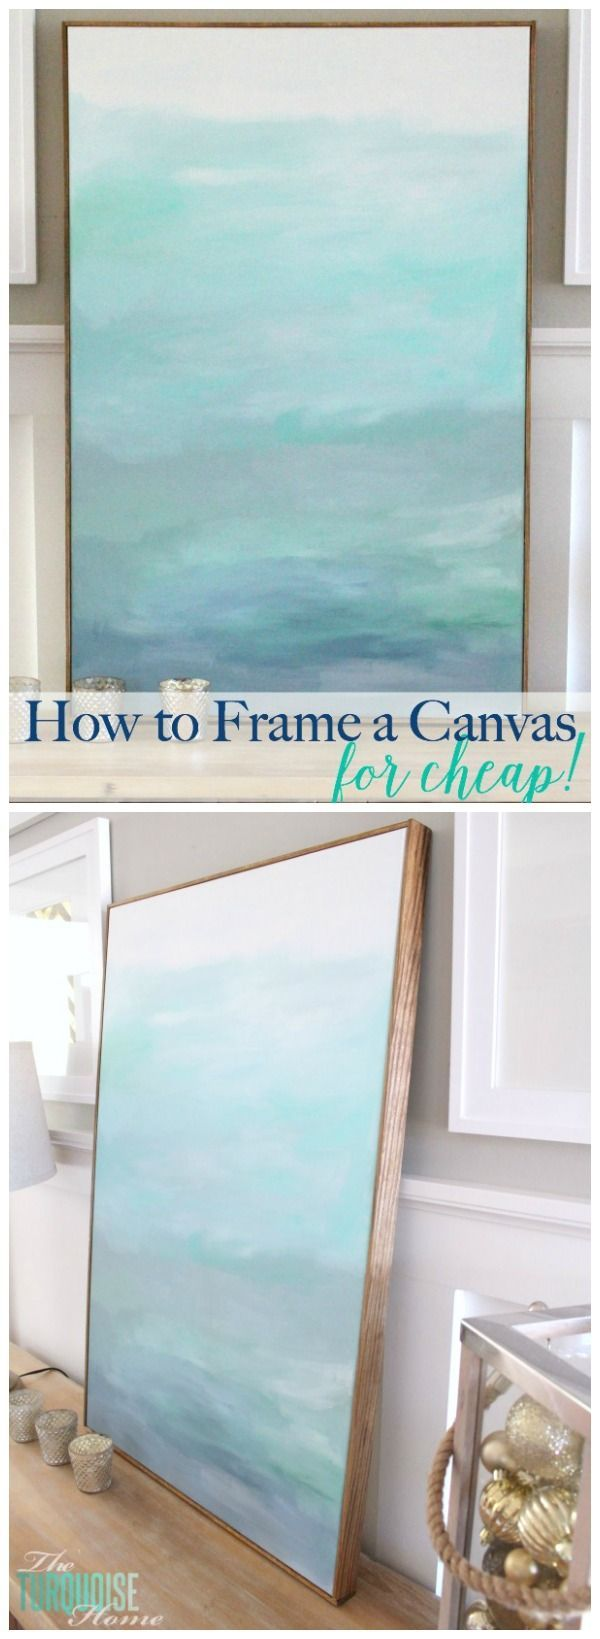 How to Frame a Canvas (for Cheap | Pinterest | Canvases, Easy and ...